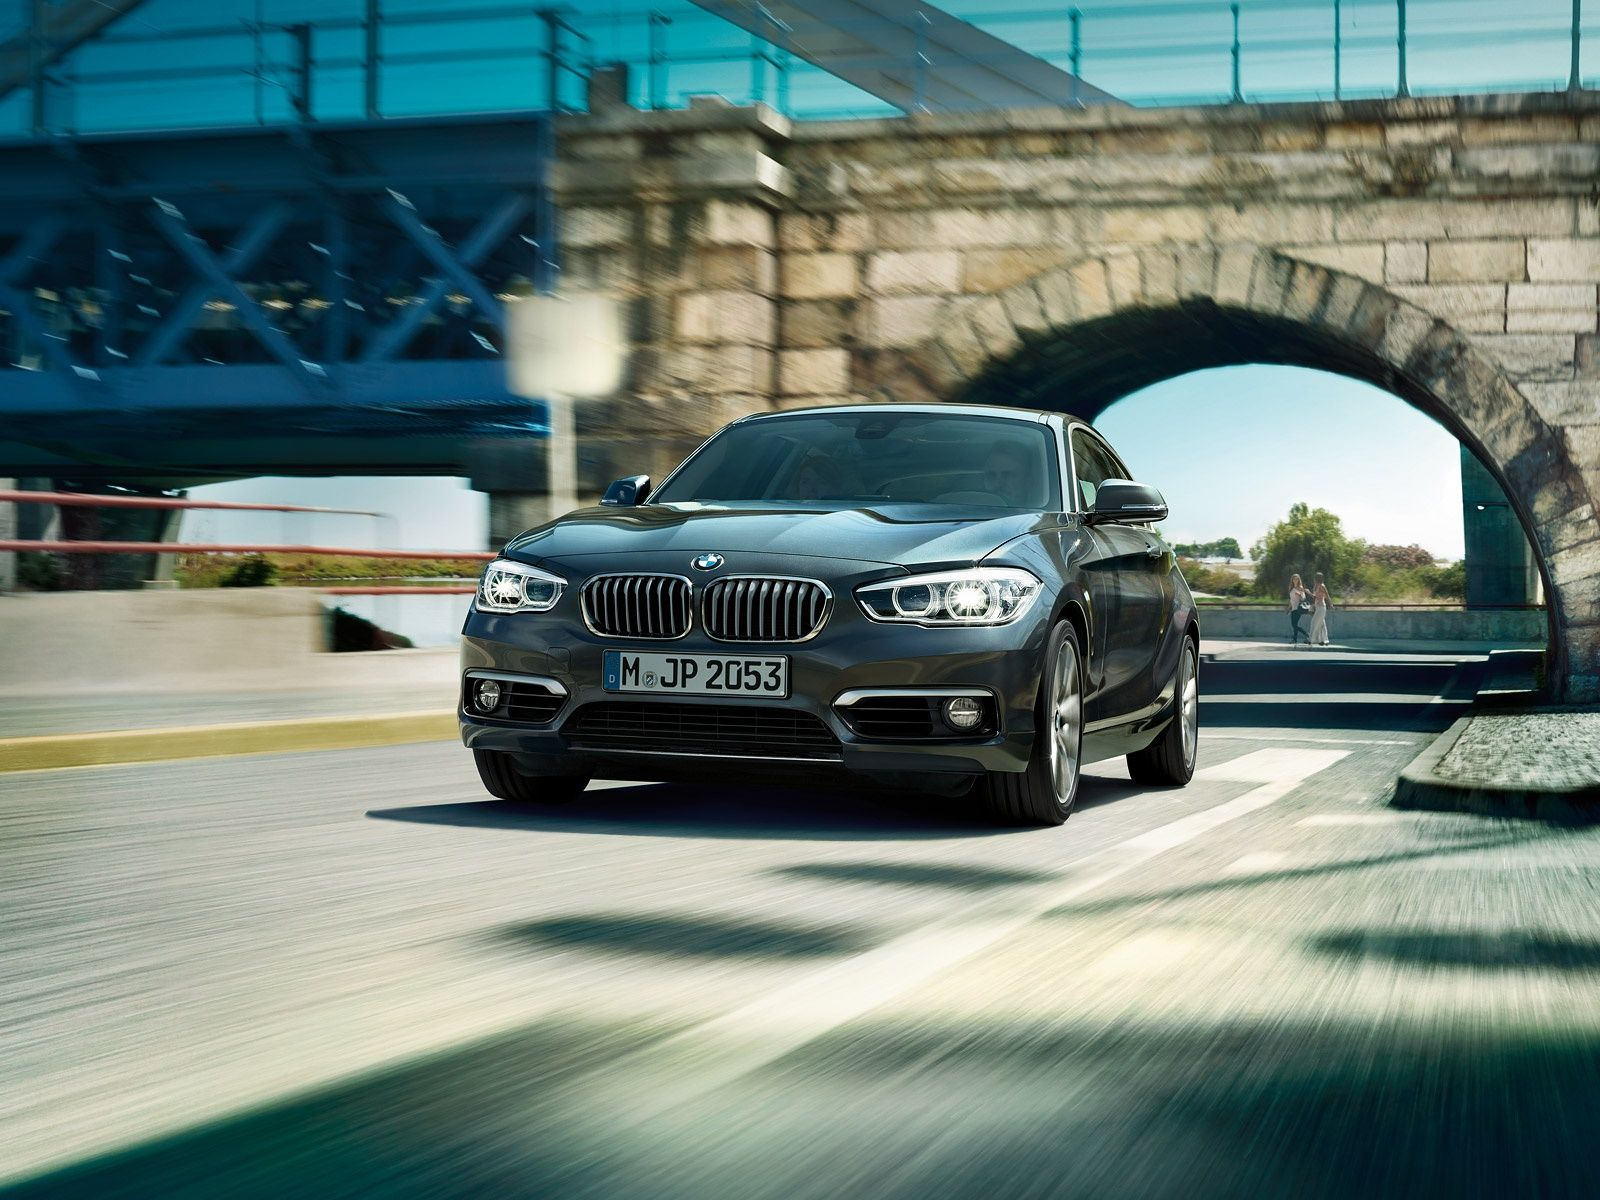 Get Great Prices On Bmw 1 Series Sports Cars For Sale Ruelspot Com Automobiles General Information Bmw 1 Series Bmw Sports Cars For Sale